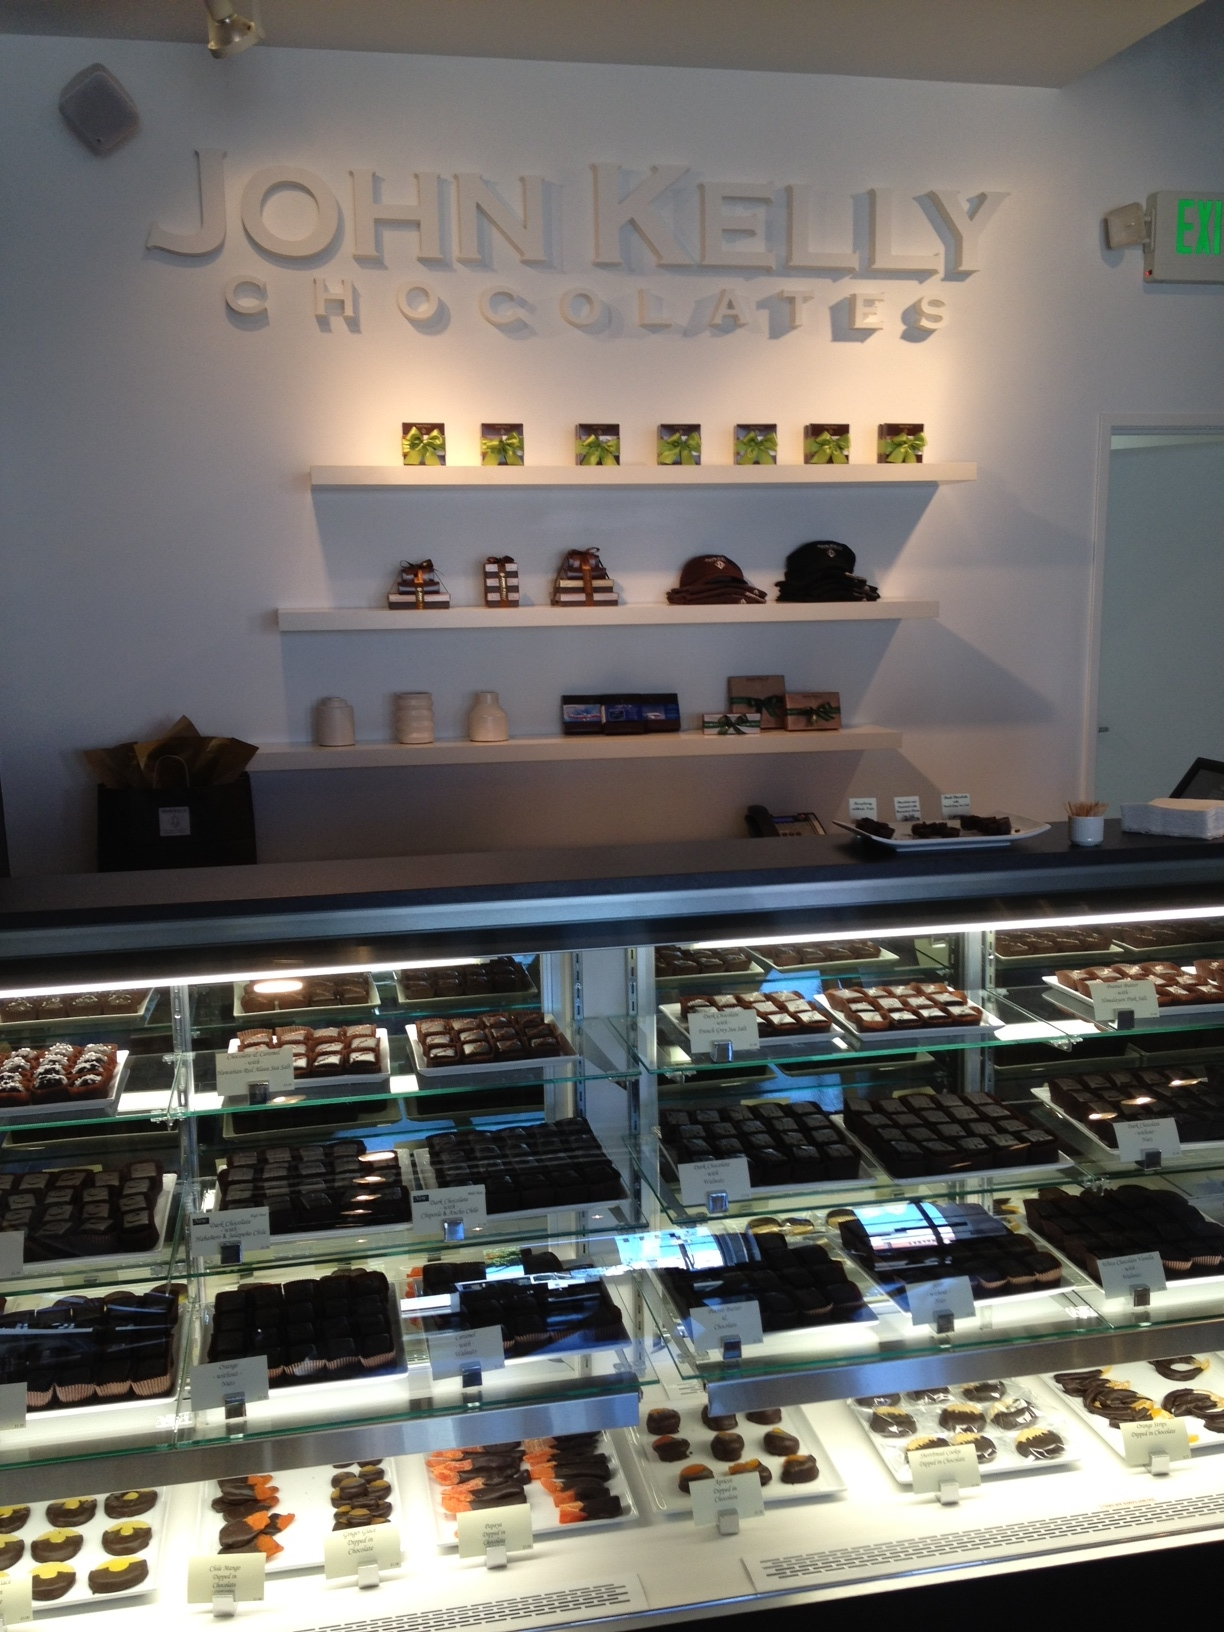 John Kelly Chocolates Now Open On Montana In Santa Monica ...